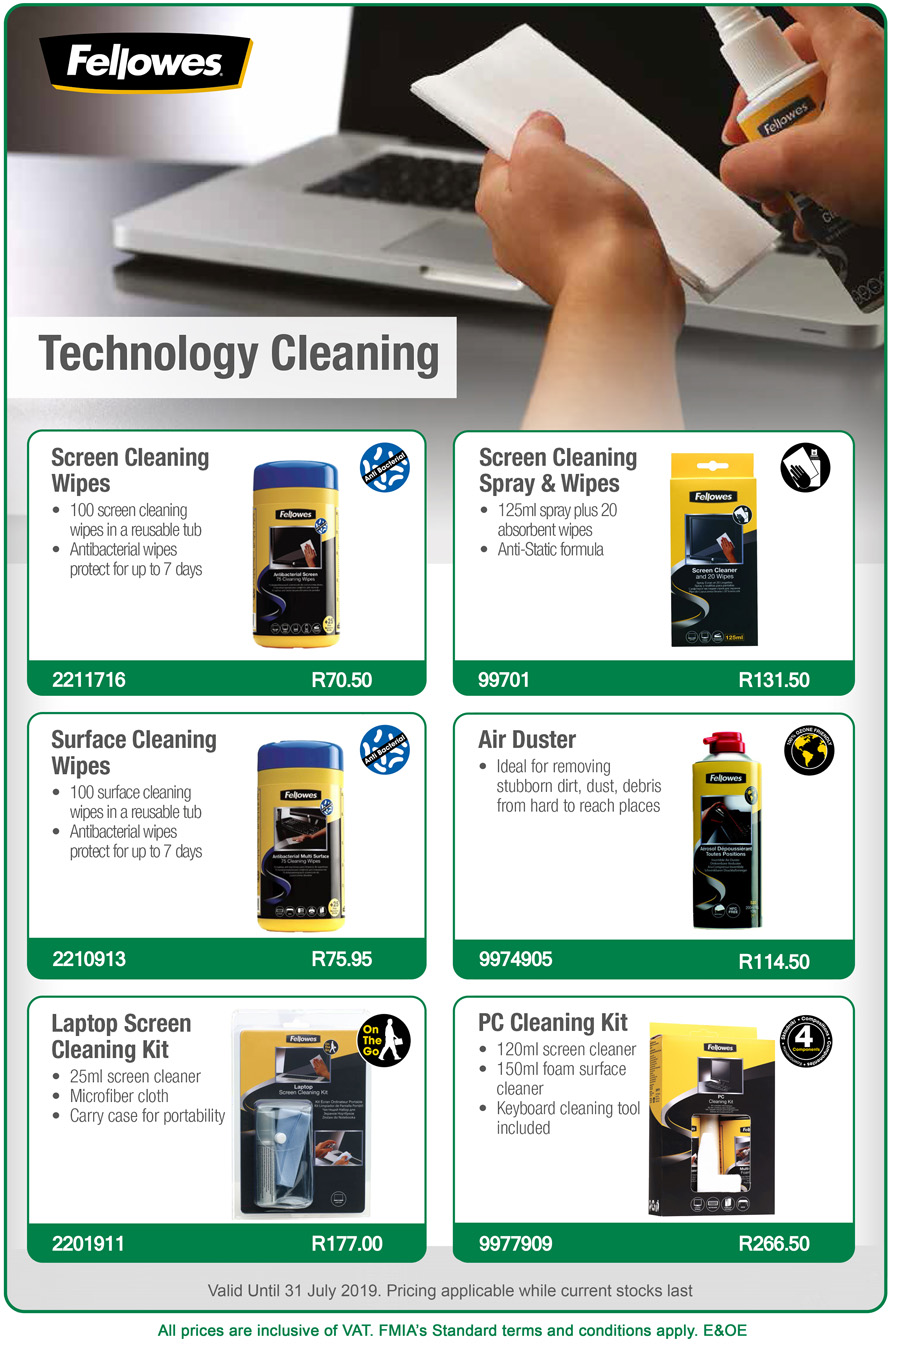 Technology Cleaning Promotion Web